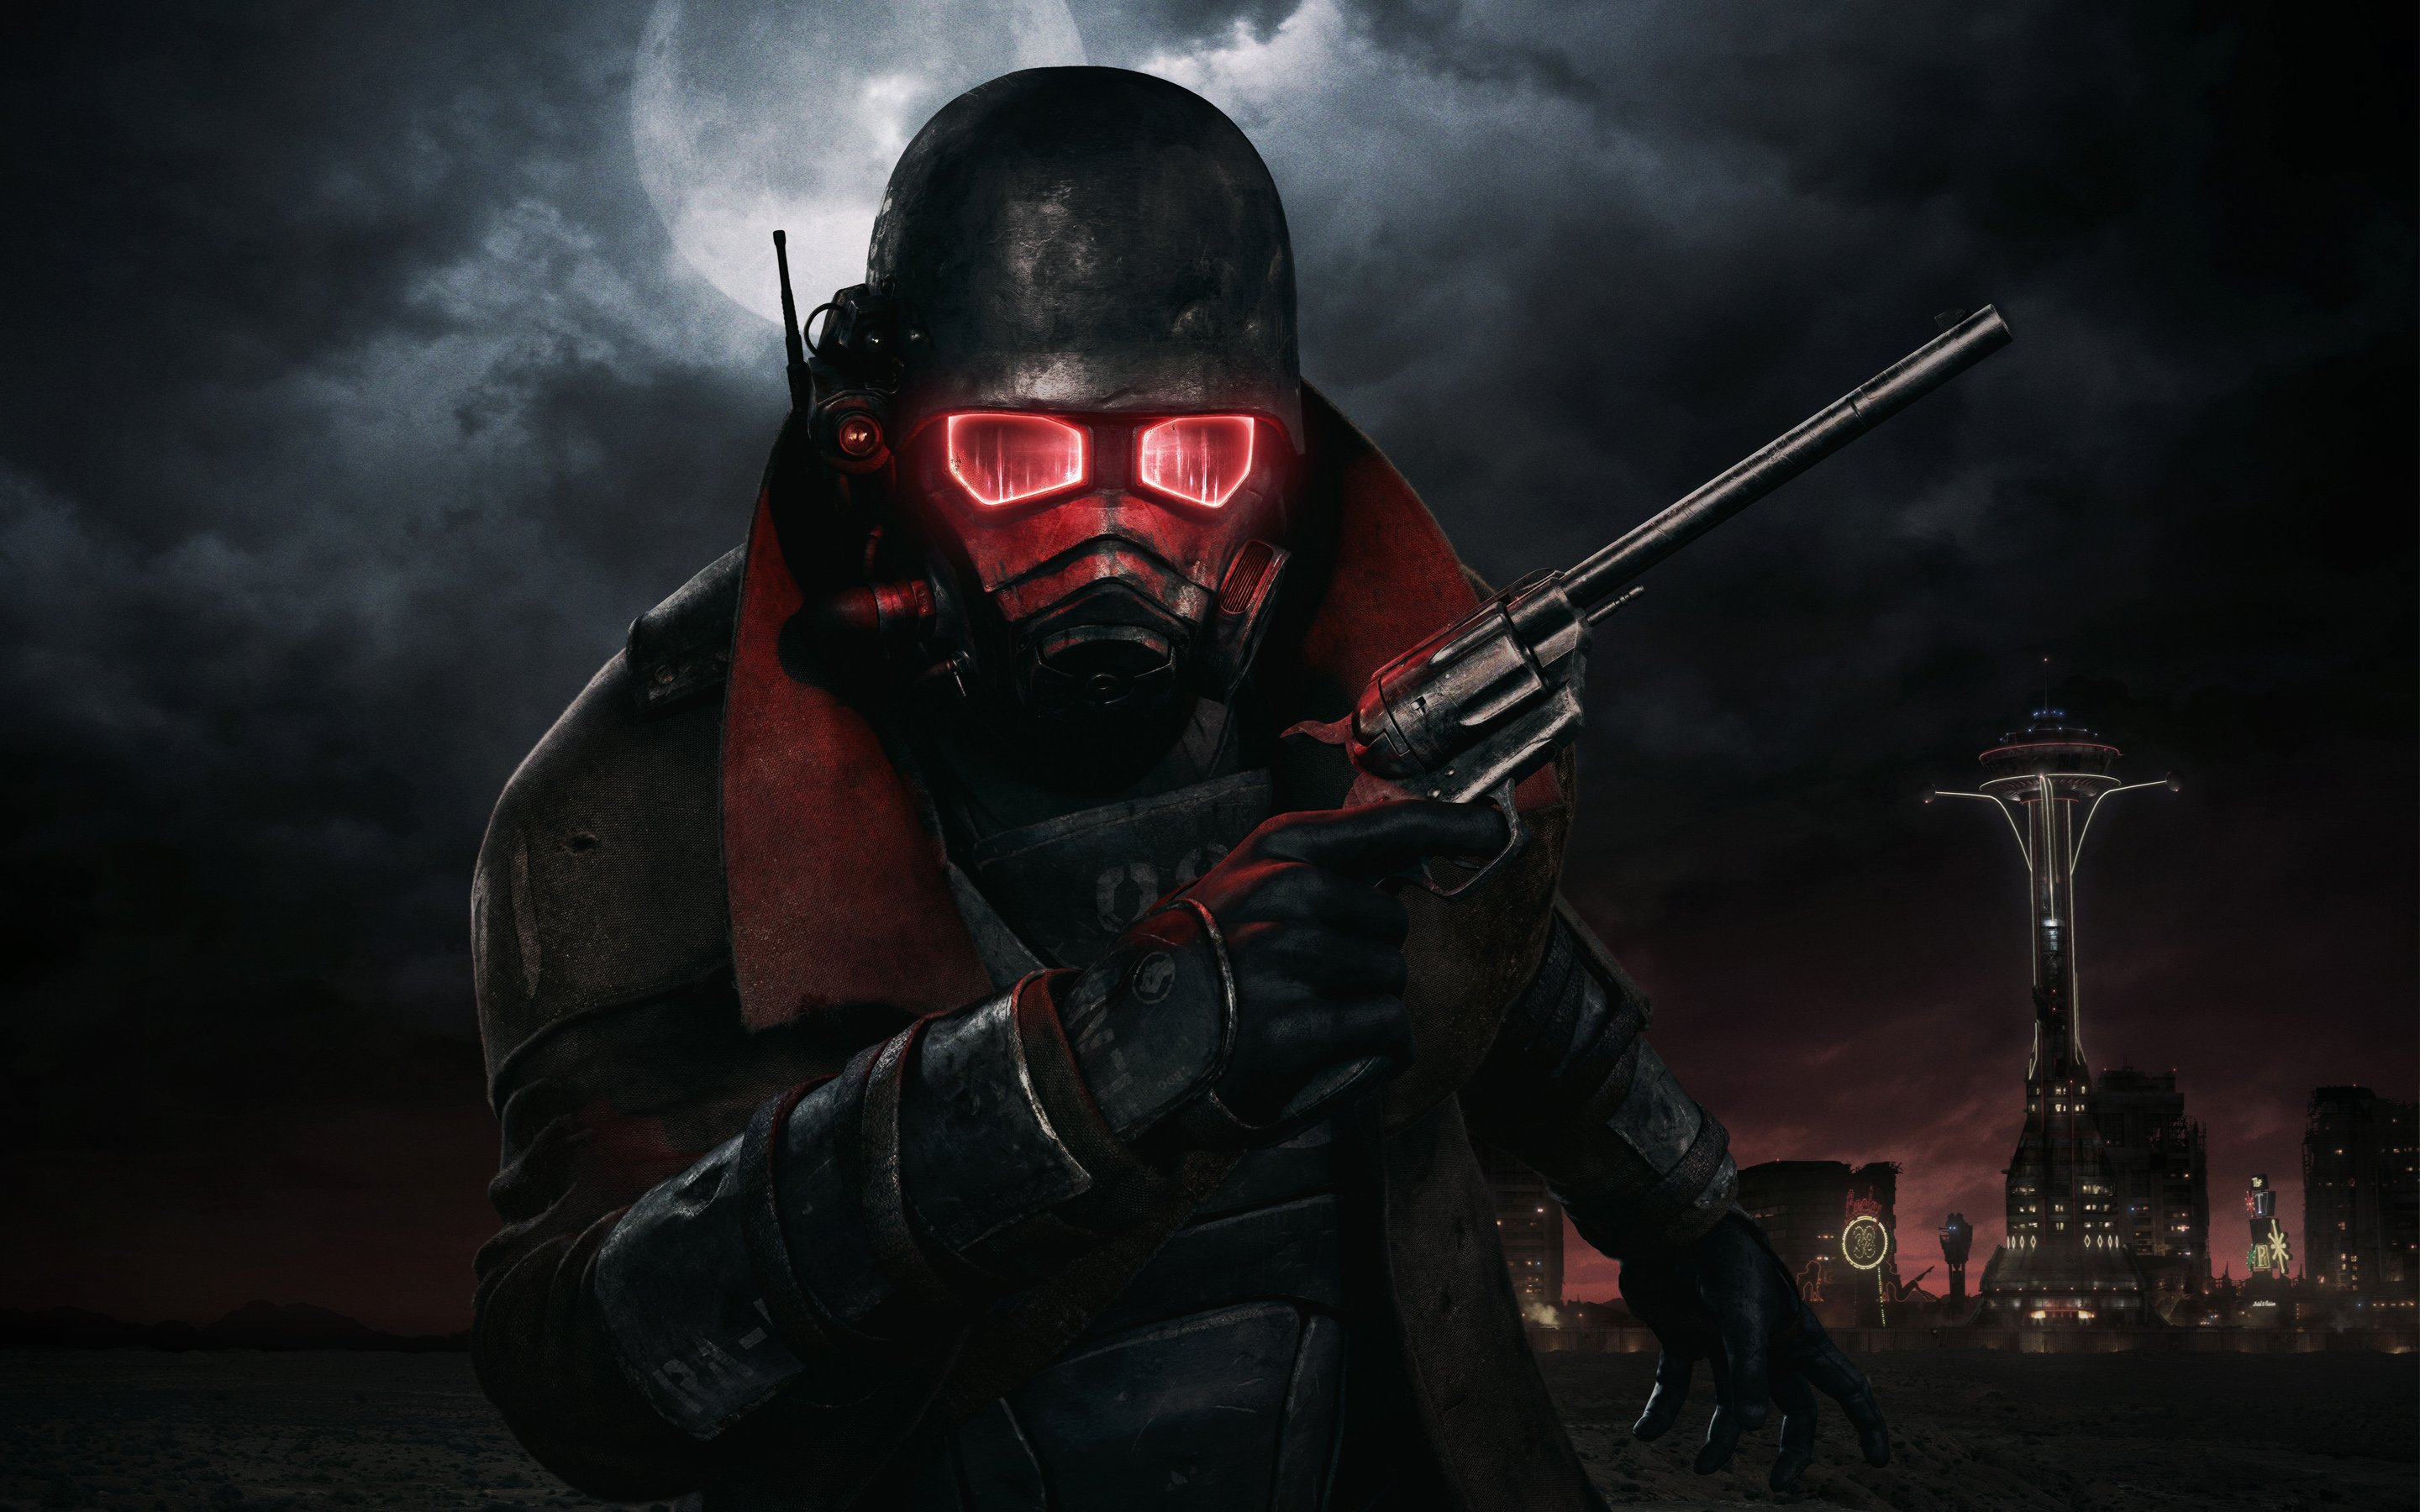 Free Download Fallout New Vegas Game Wallpapers Hd Wallpapers